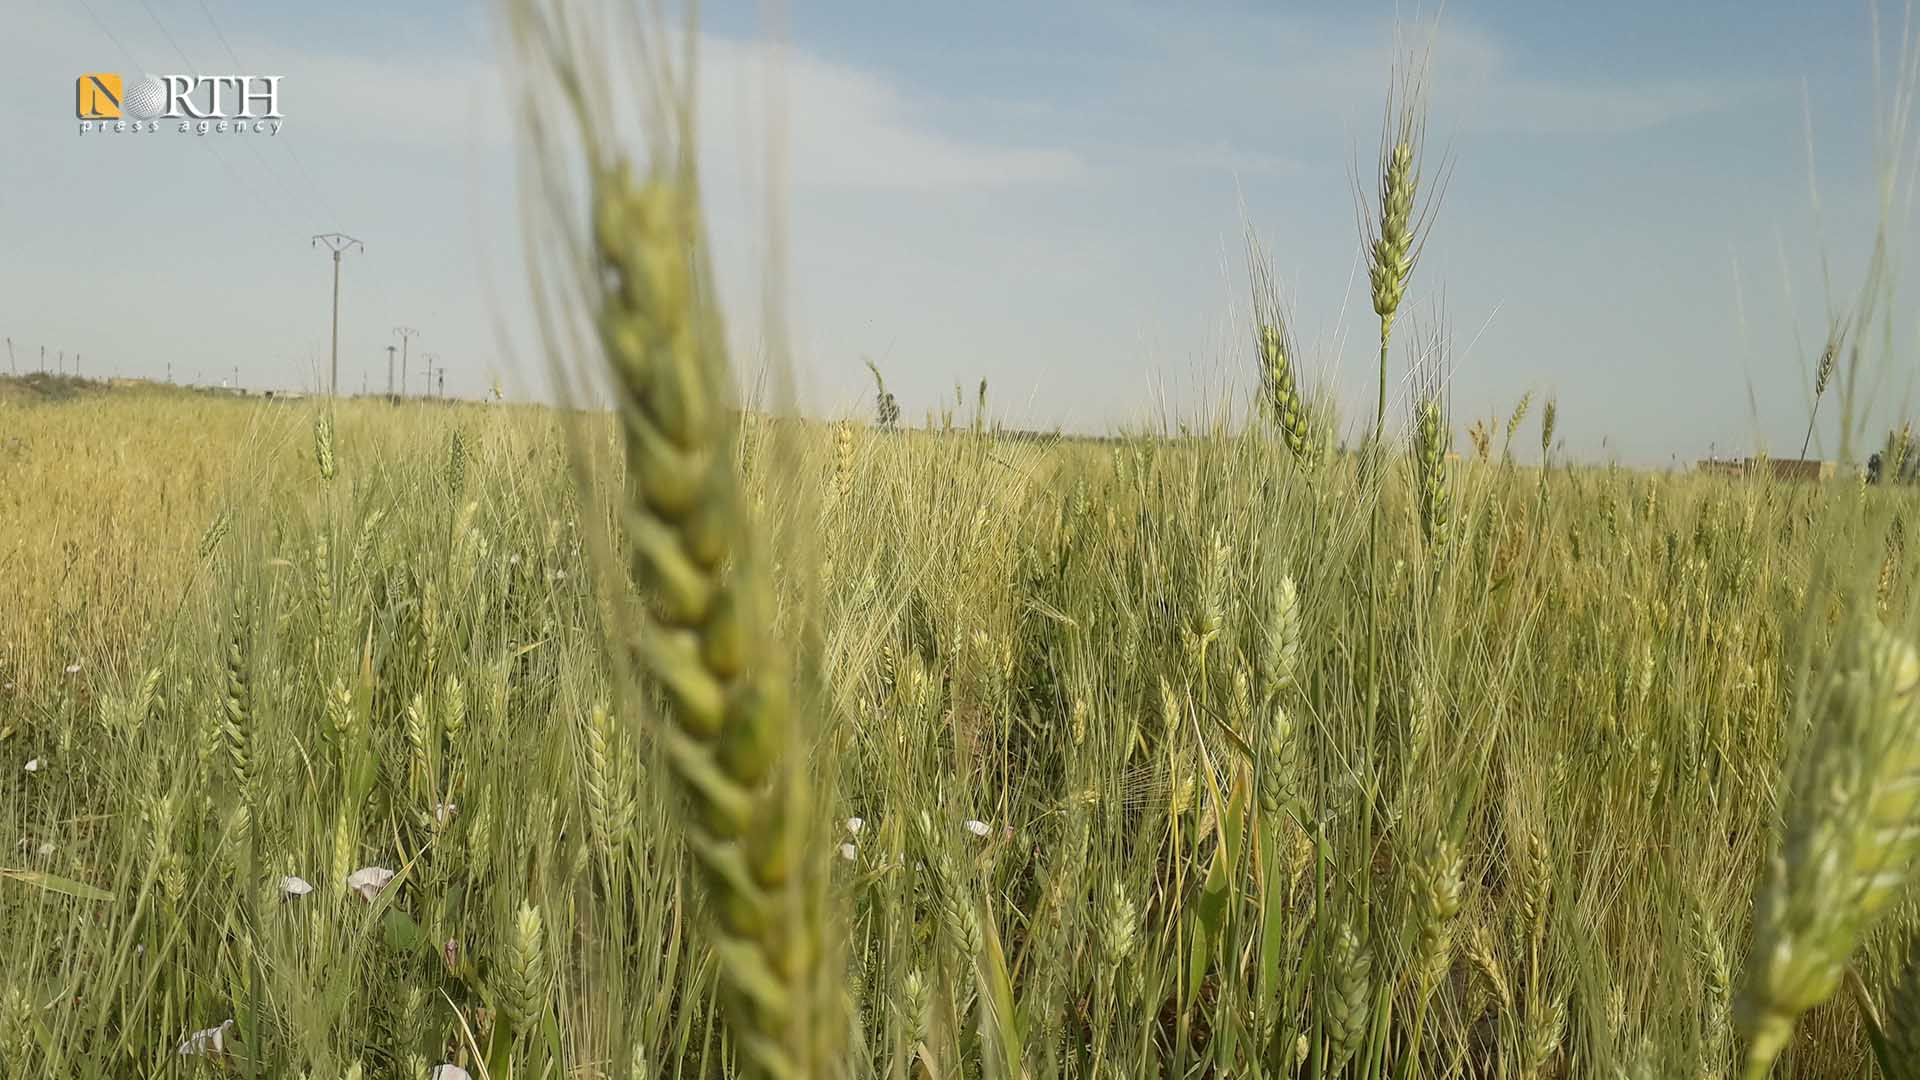 agricultural lands in Raqqa north of Syria - North Press